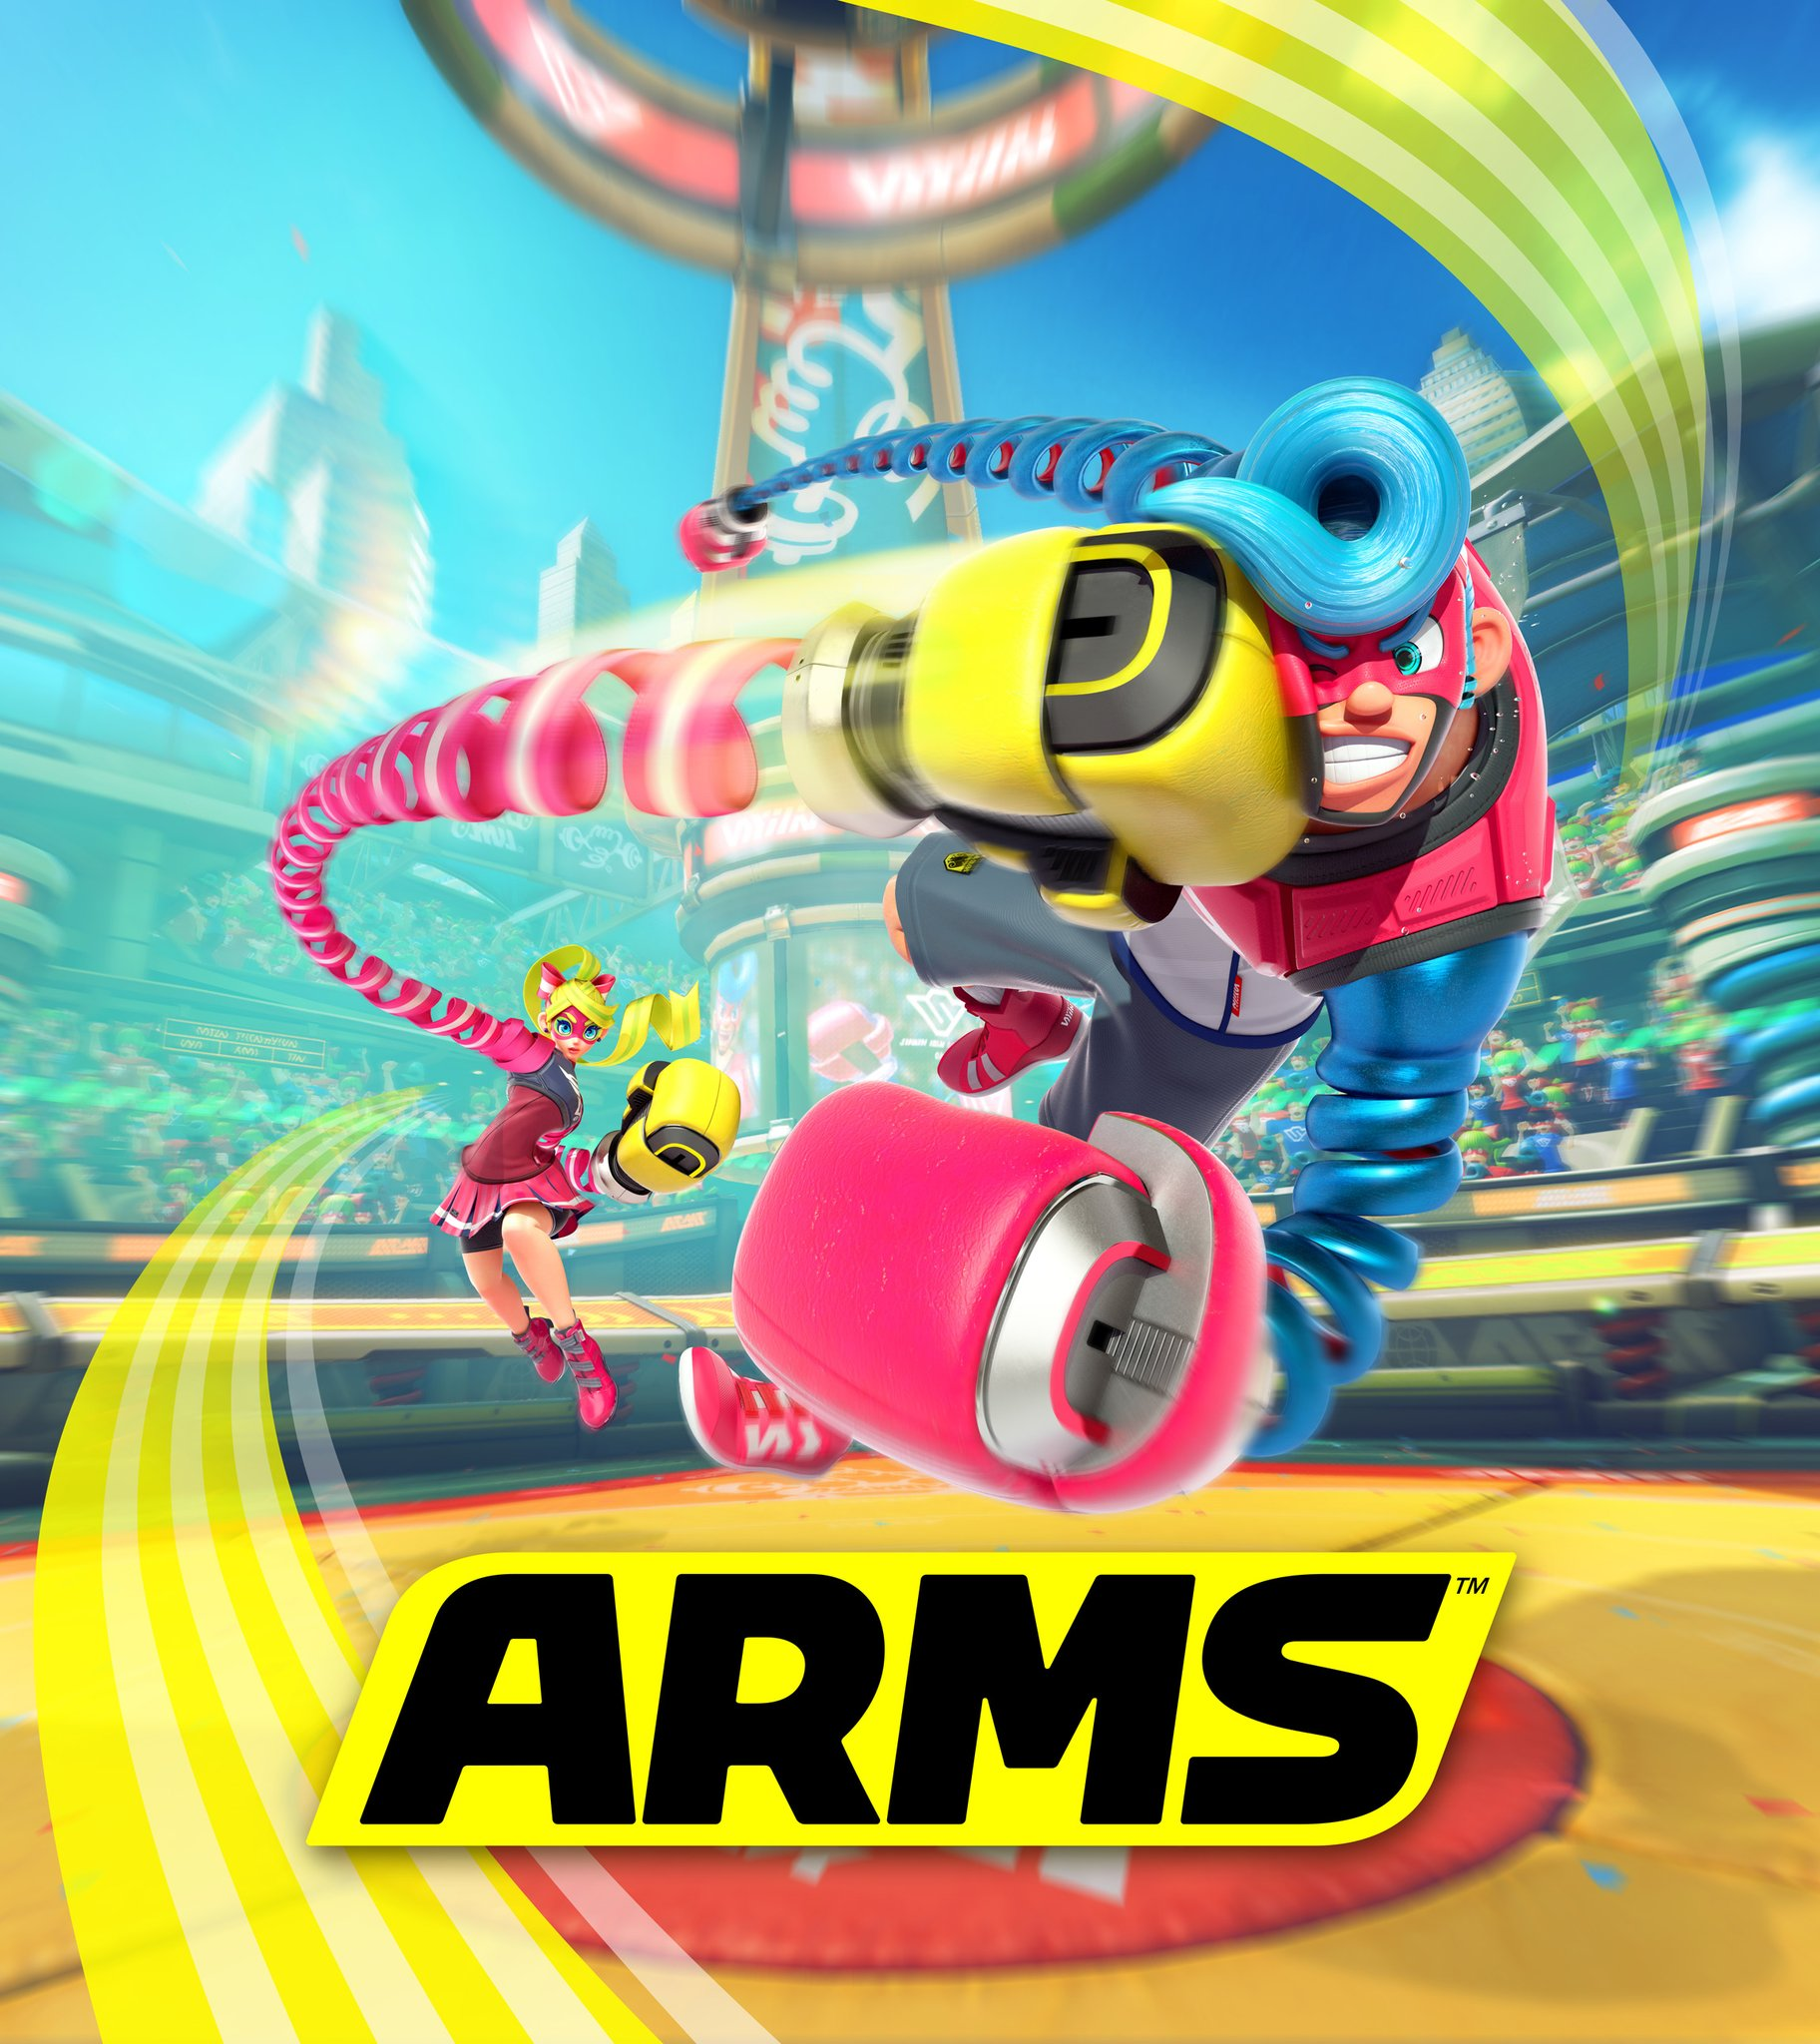 UK: GAME Lists Arms For Nintendo Switch With April 15th